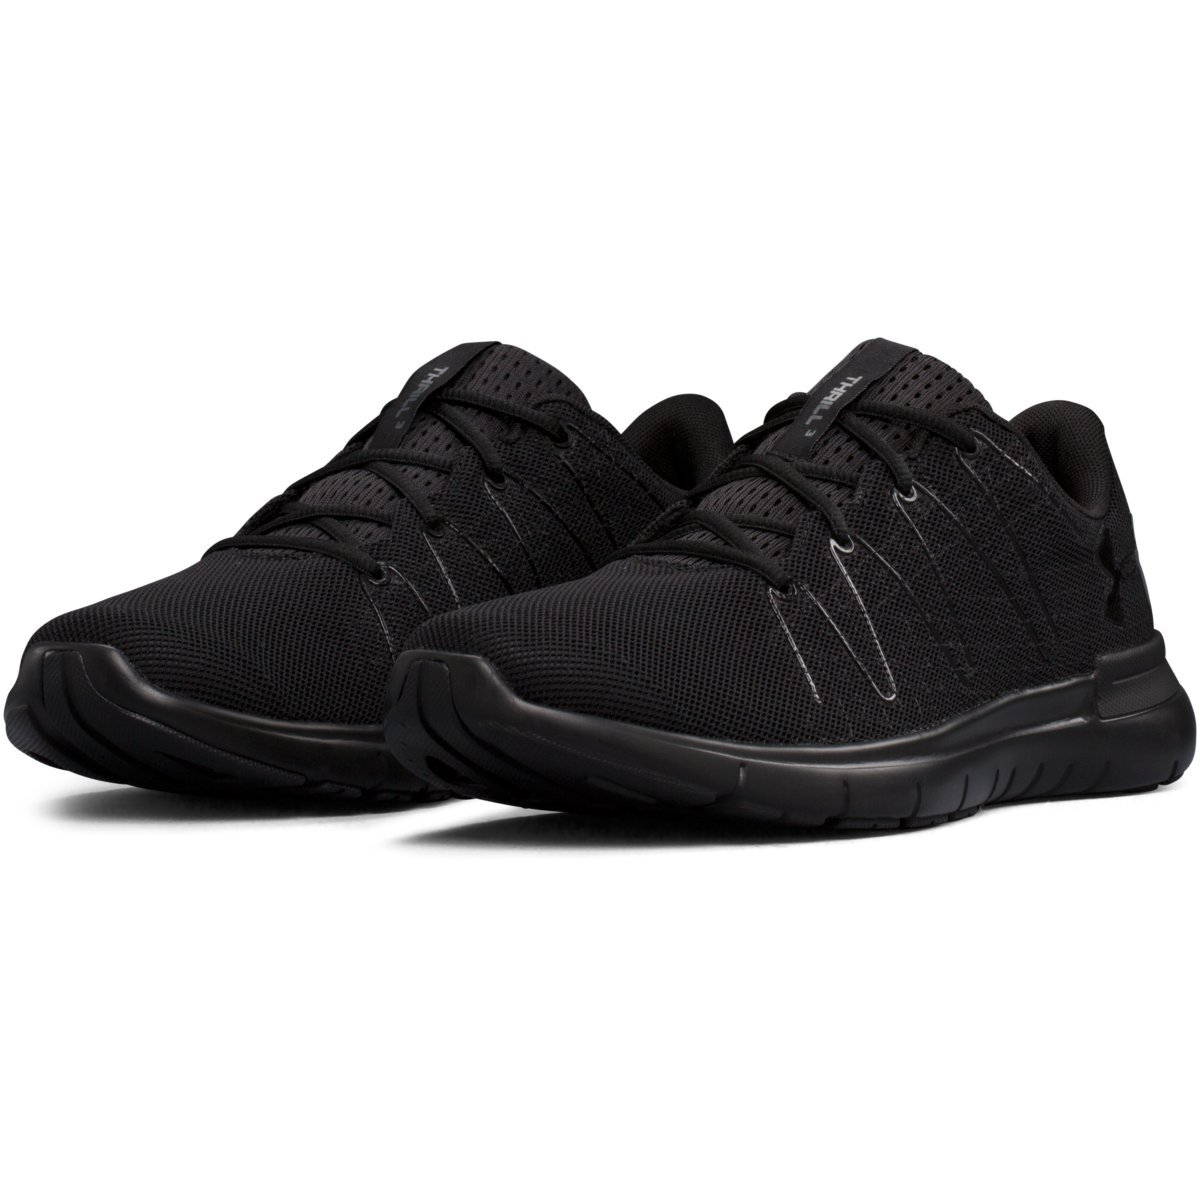 watch ec6a0 bf006 UNDER ARMOUR Men's Thrill 3 Running Shoes, Triple Black ...